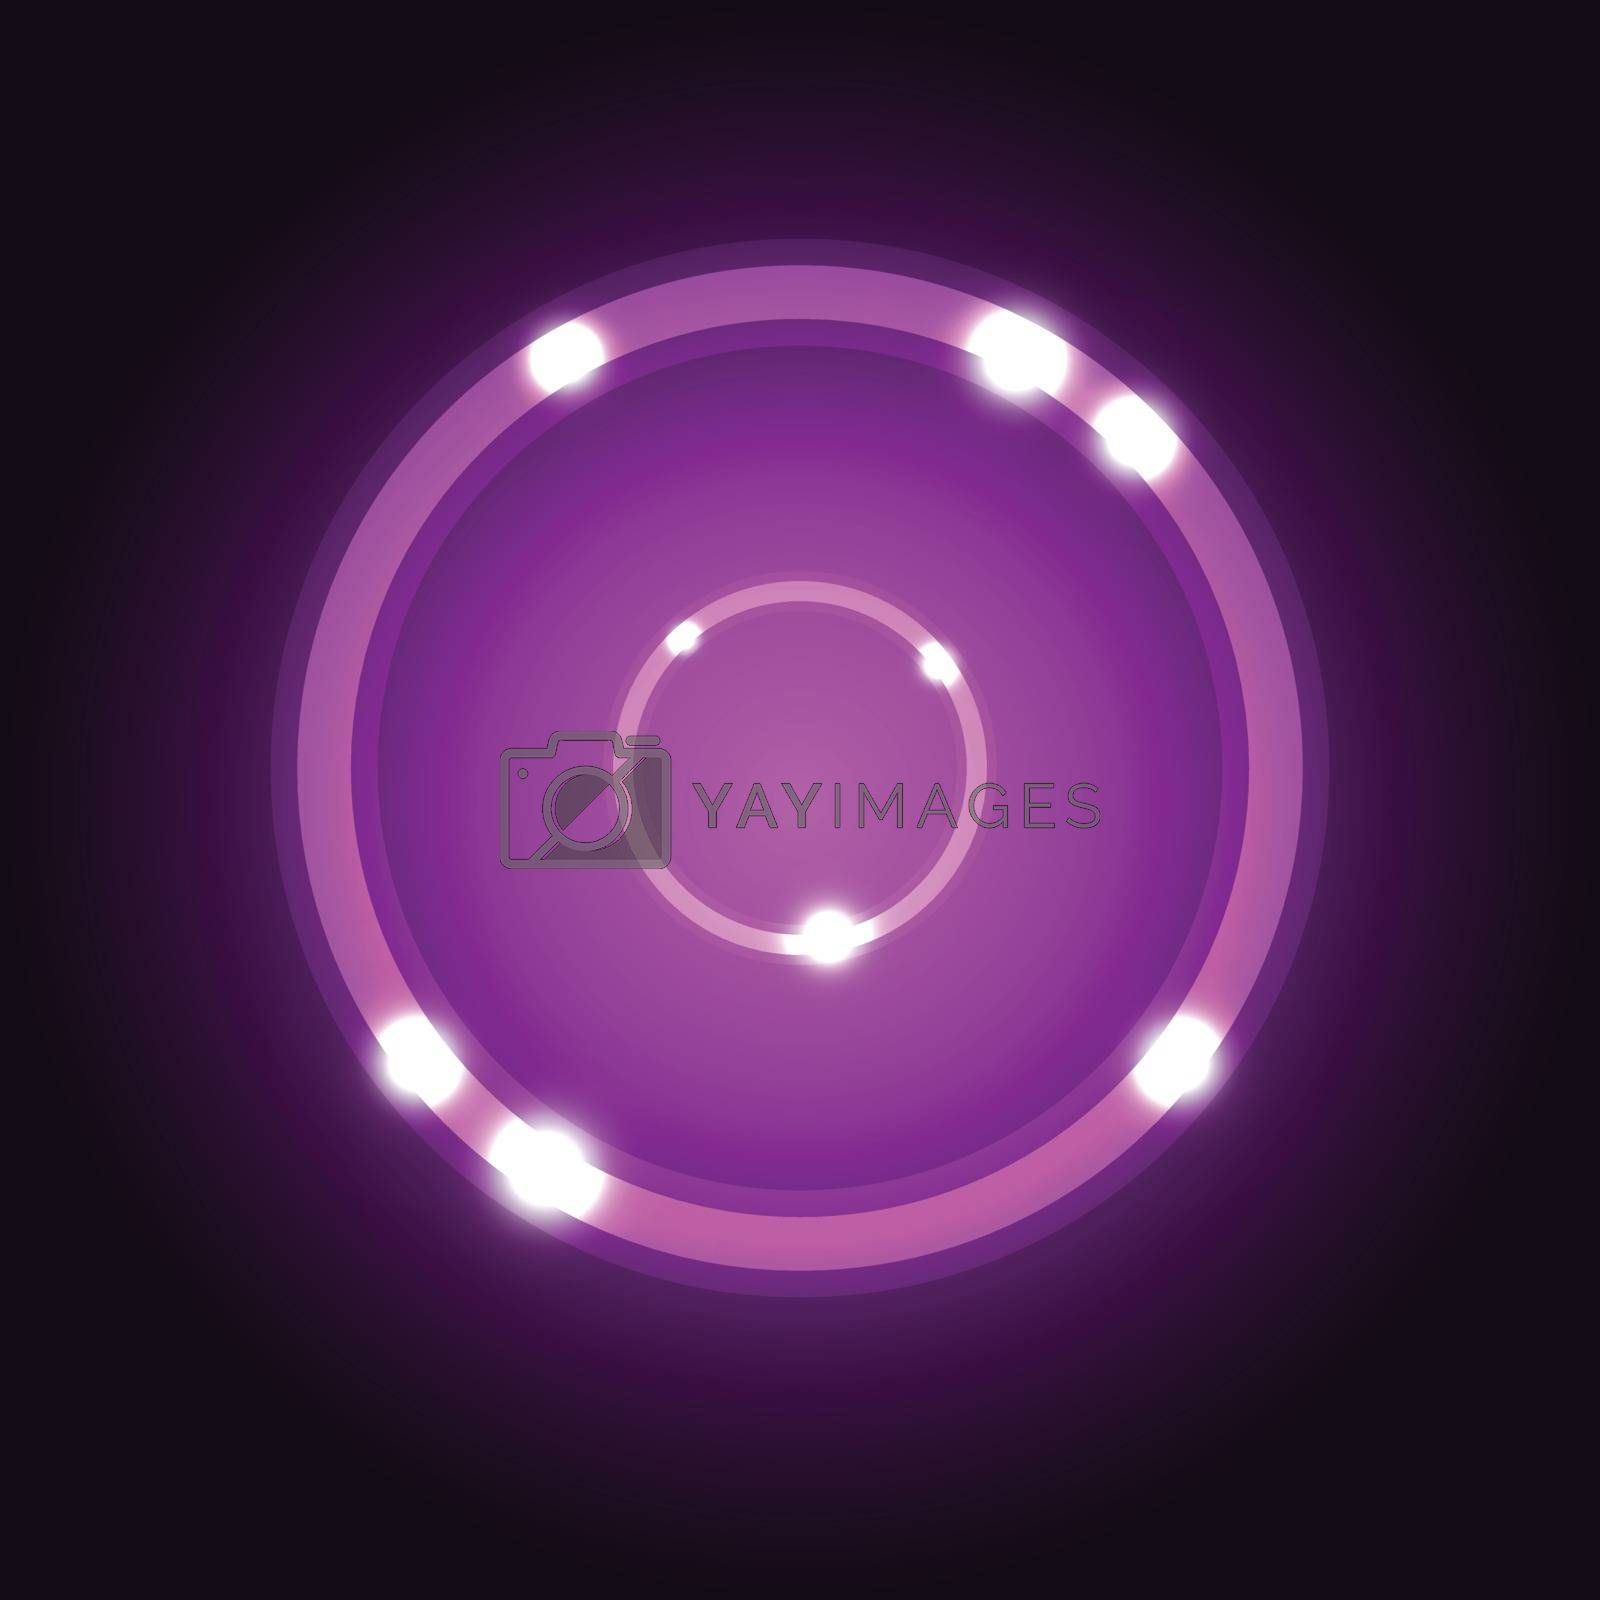 Abstract background with violet circle stock vector